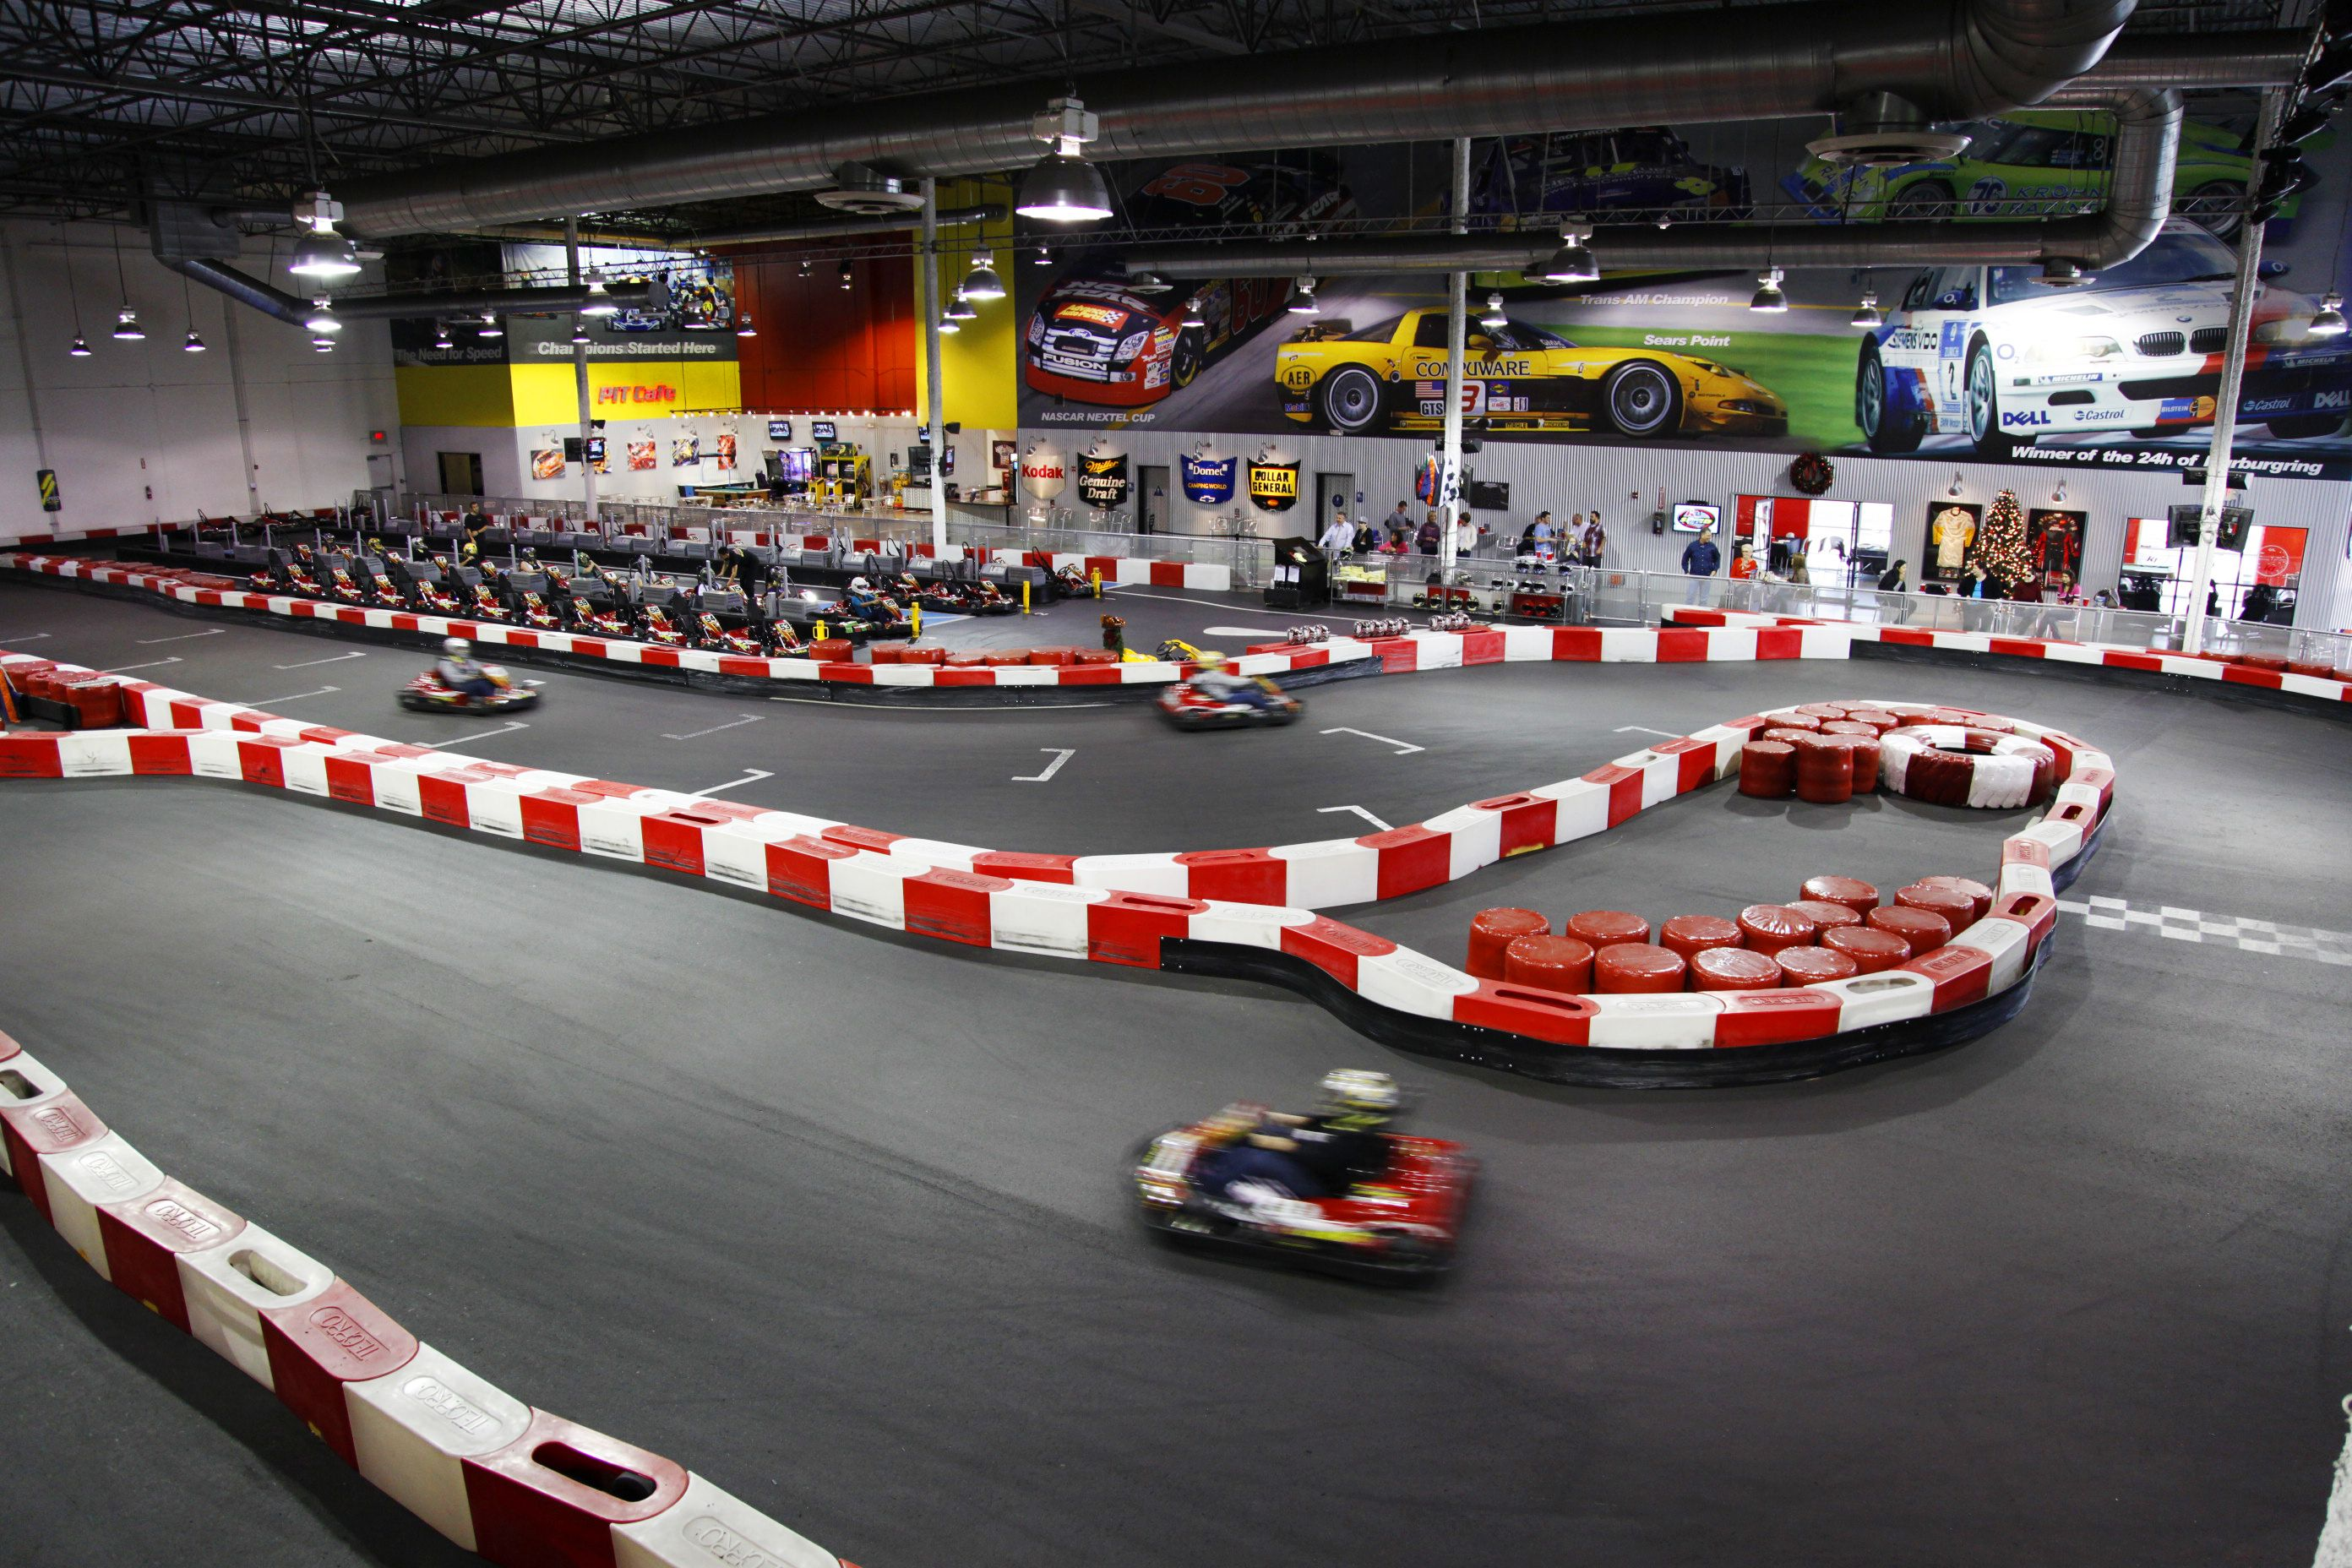 if you want to experience indoor go kart racing in the fortif you want to experience indoor go kart racing in the fort lauderdale, miami, or boca raton area, then k1 speed fort lauderdale is for you!